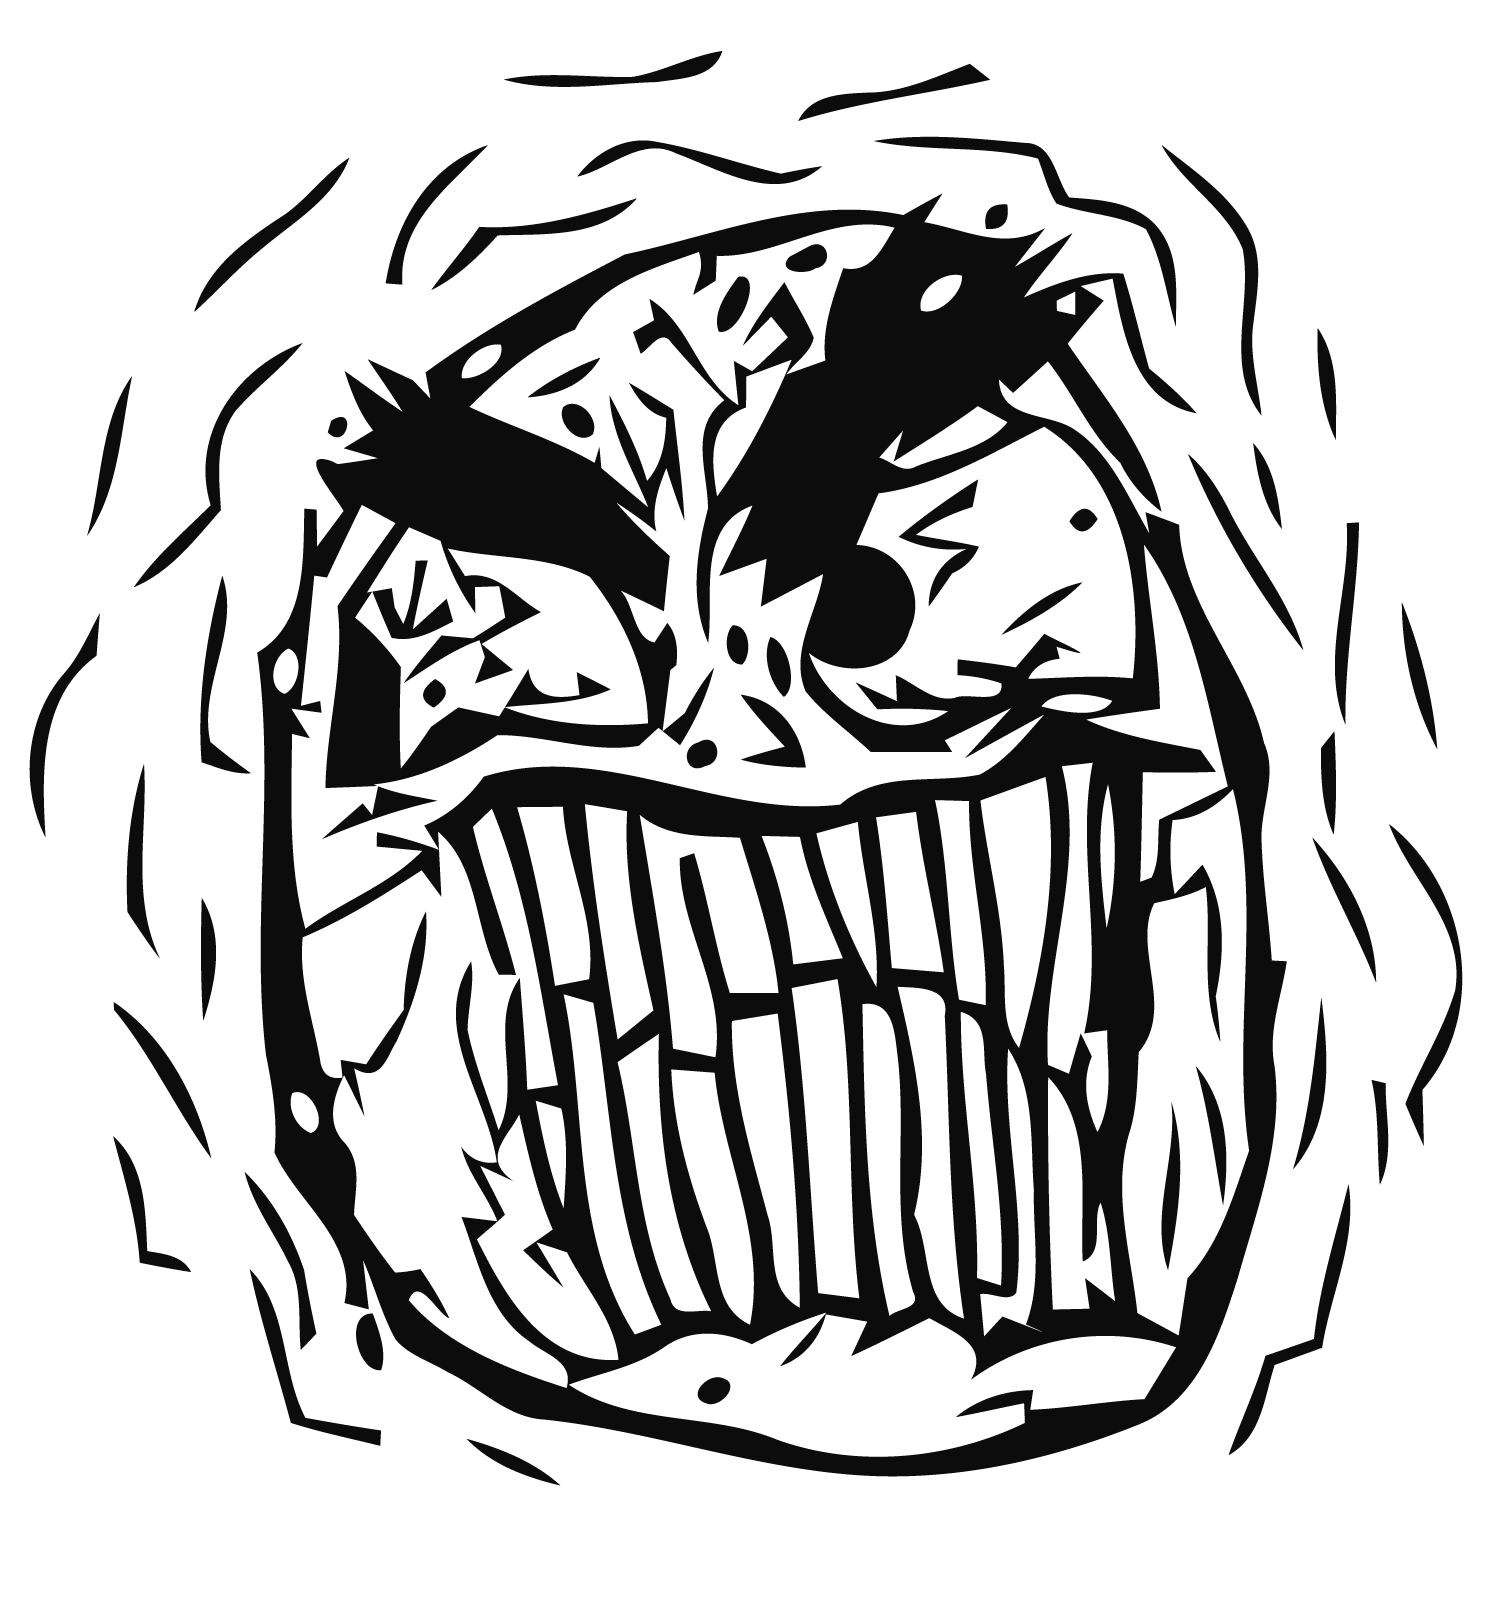 angry rage face meme - photo #22